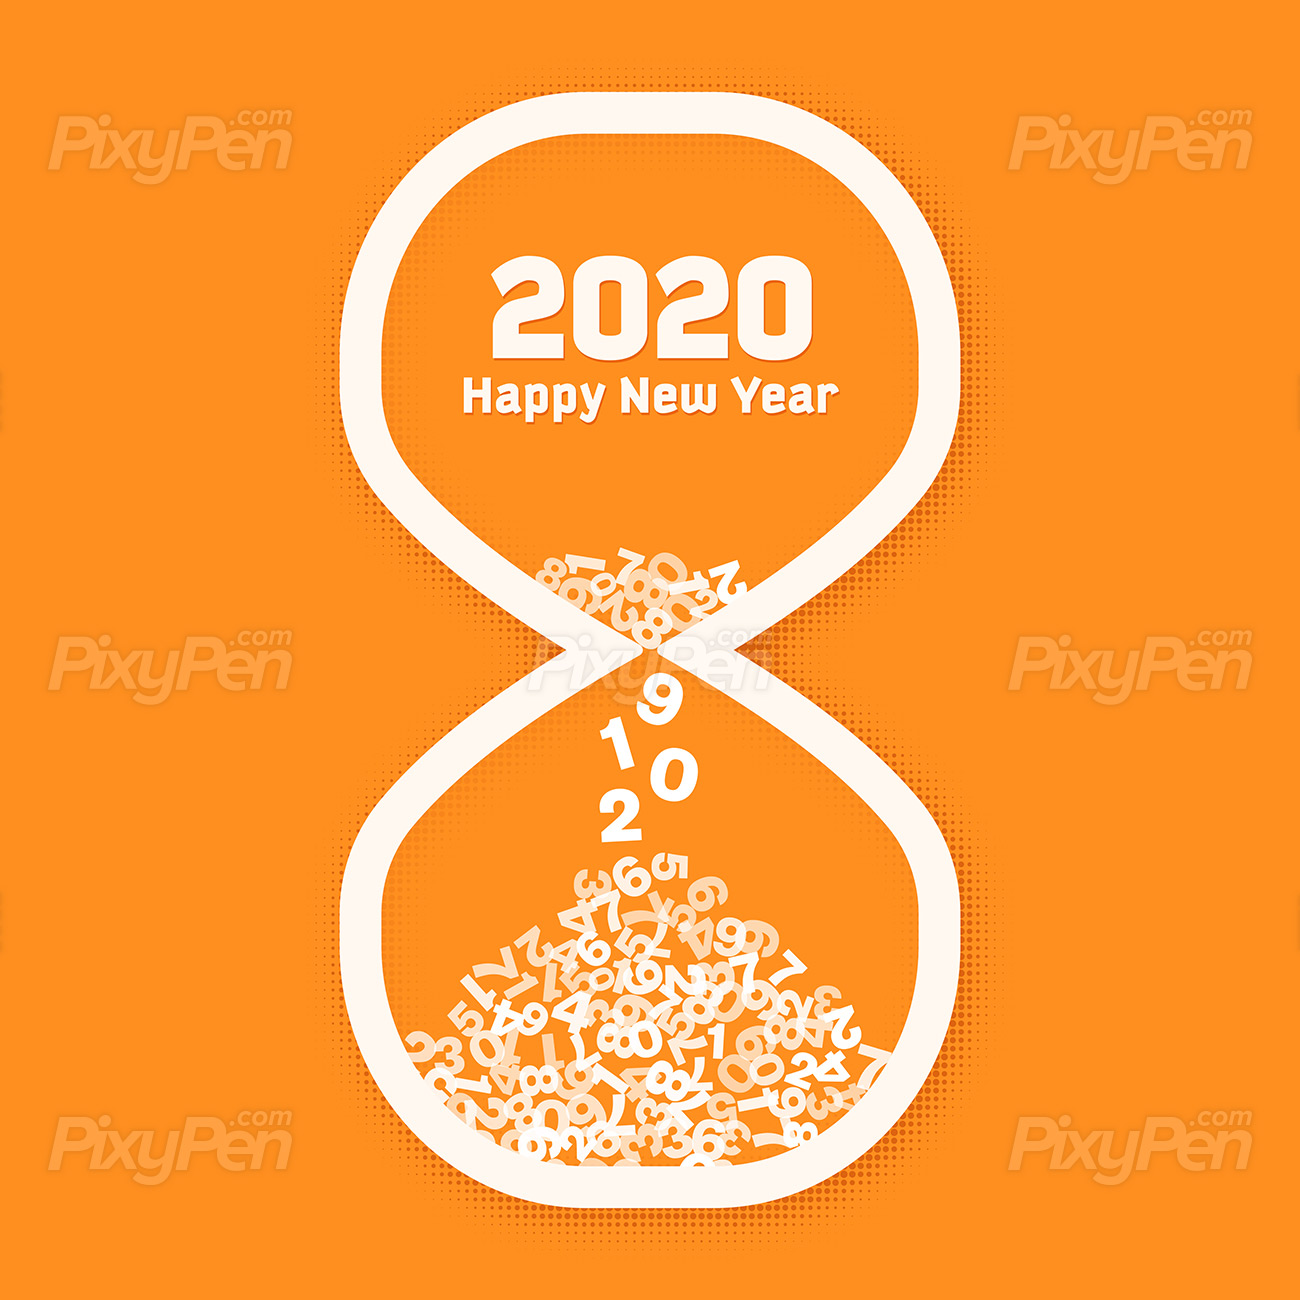 download Happy New Year 2020 JPEG Images Wallpapers 1300x1300